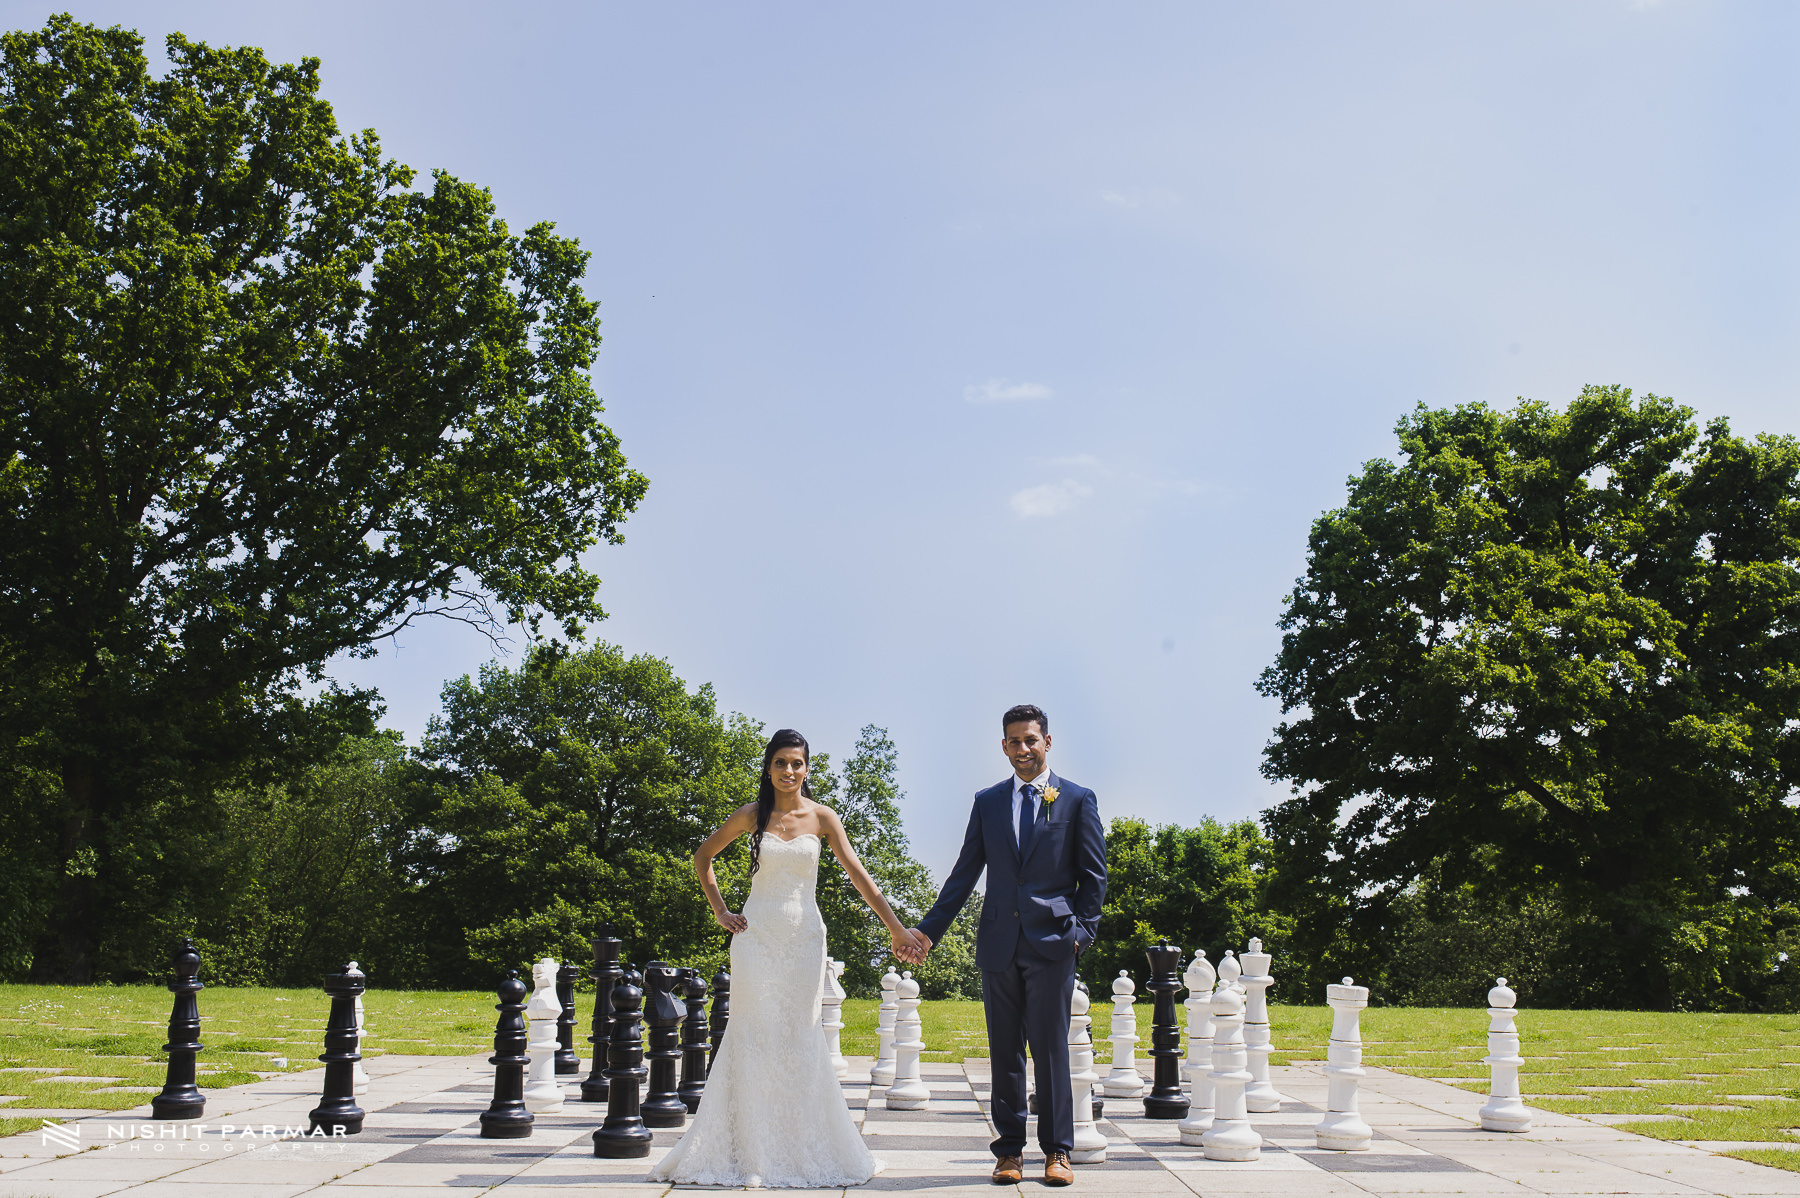 Civil Wedding Laura Ashley Manor Elstree London Wedding Photographer - bride and groom portrait in landscaped garden chess pieces